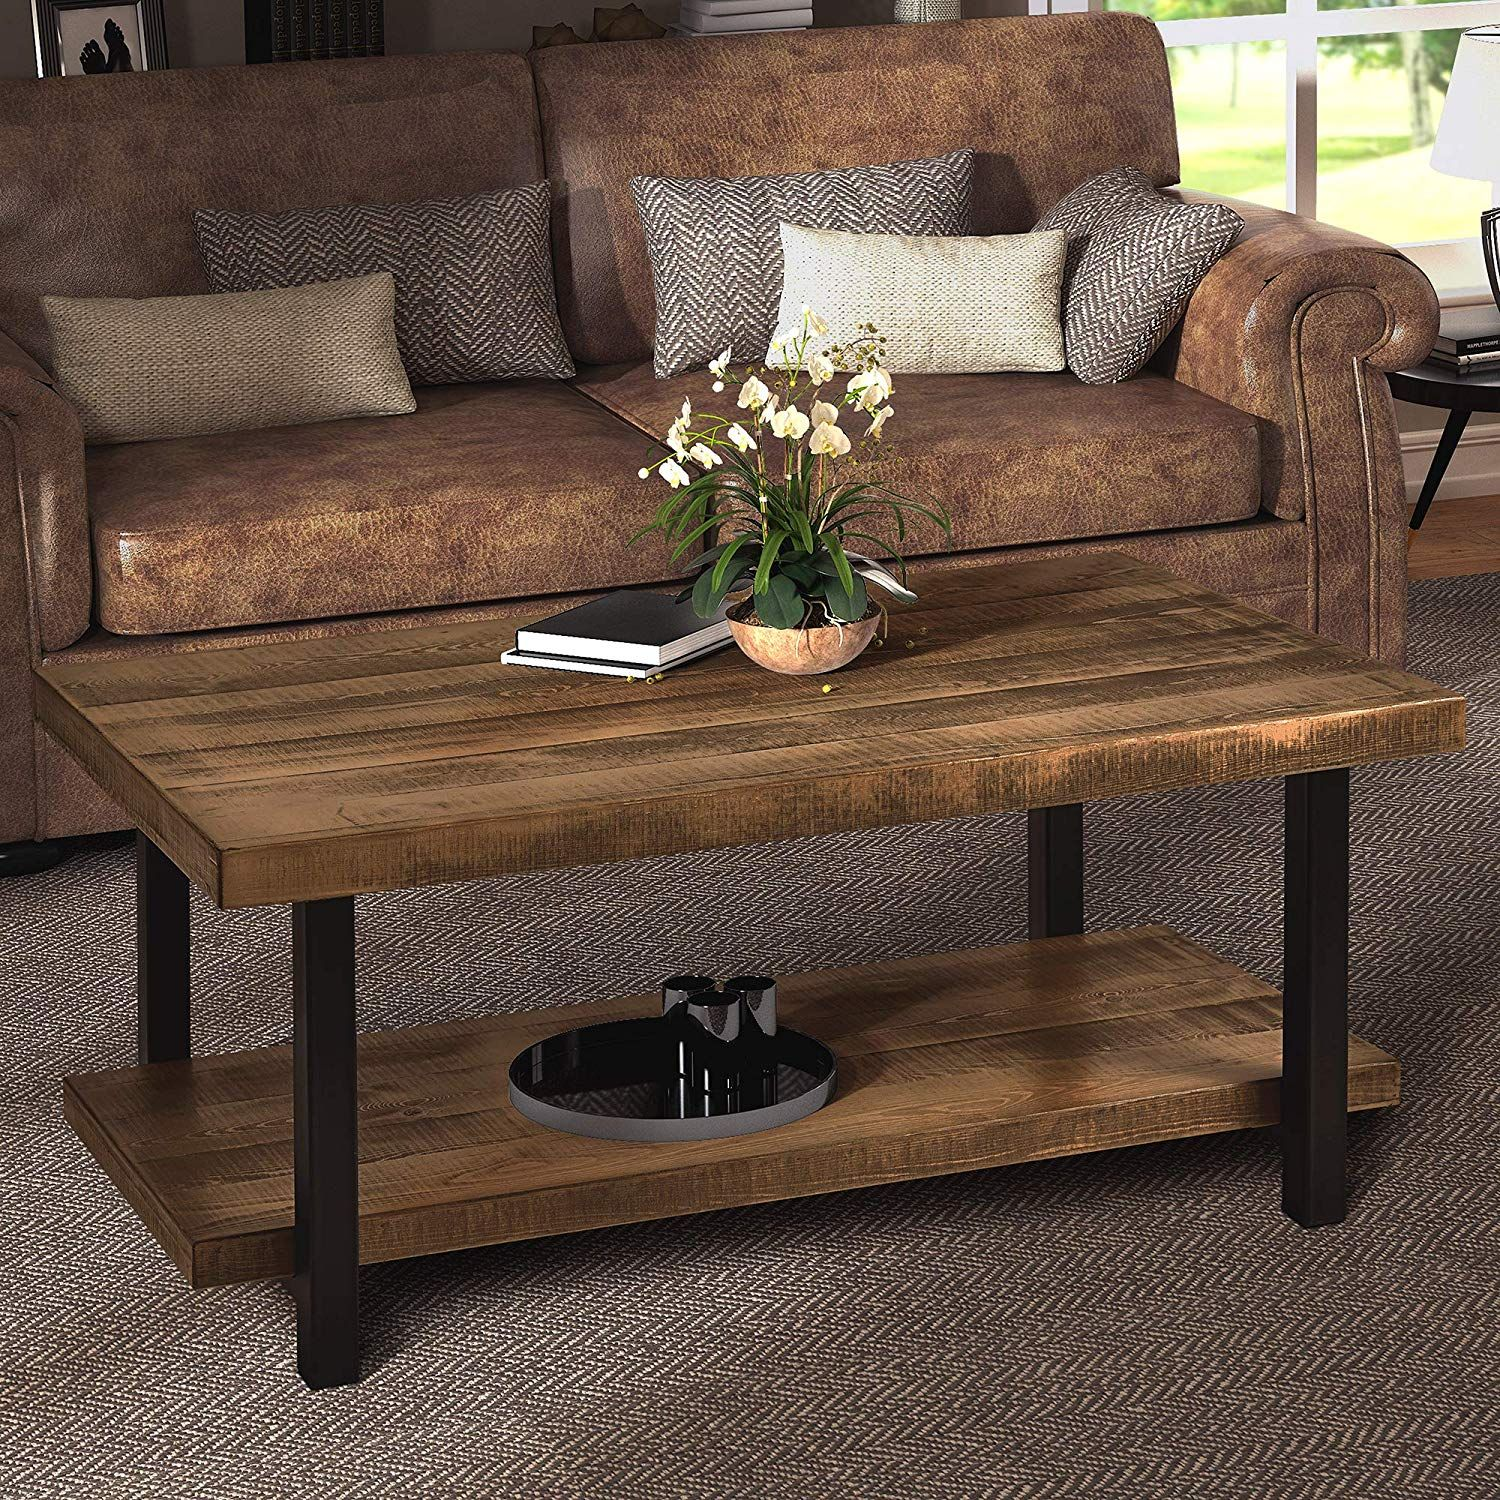 Harper Bright Designs Easy Assembly Hillside Rustic Natural Coffee